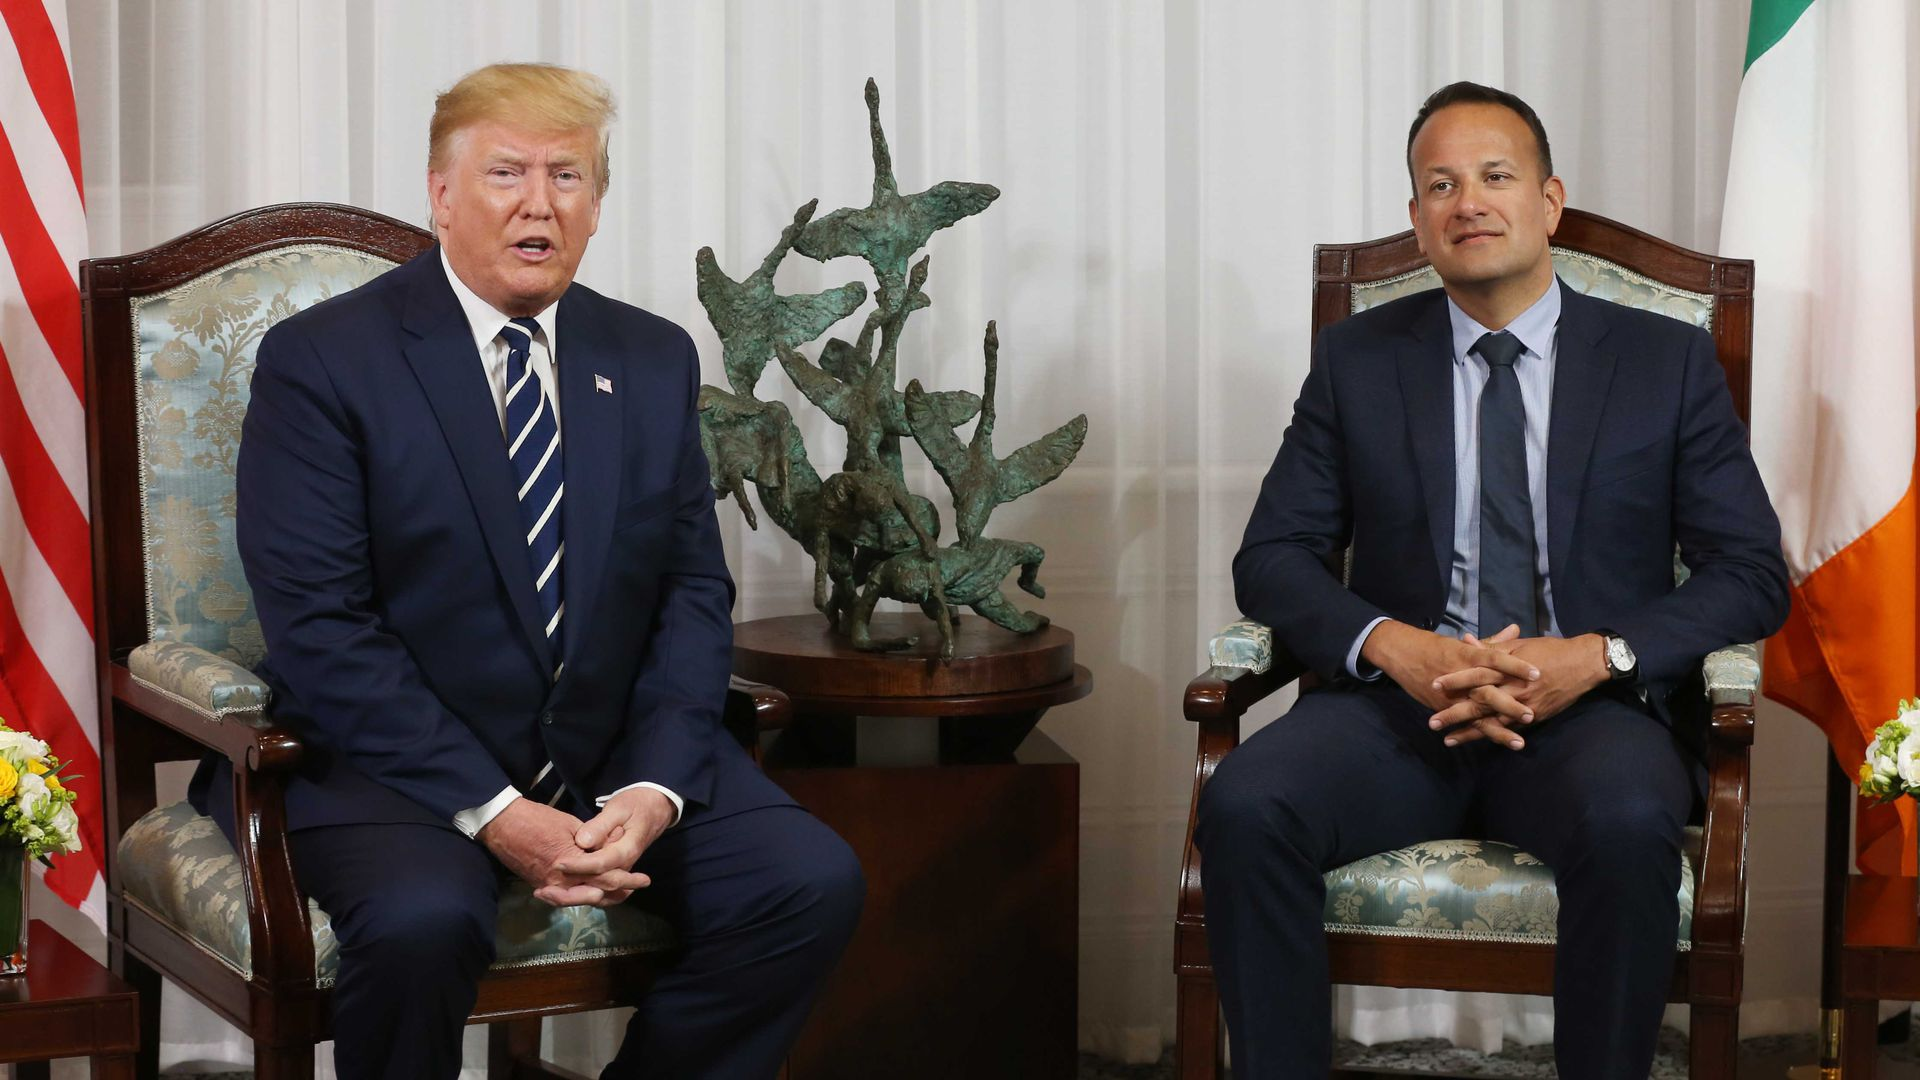 President Donald Trump during a bilateral meeting with Taoiseach Leo Varadkar at Shannon airport on June 5, 2019 in Shannon, Ireland.